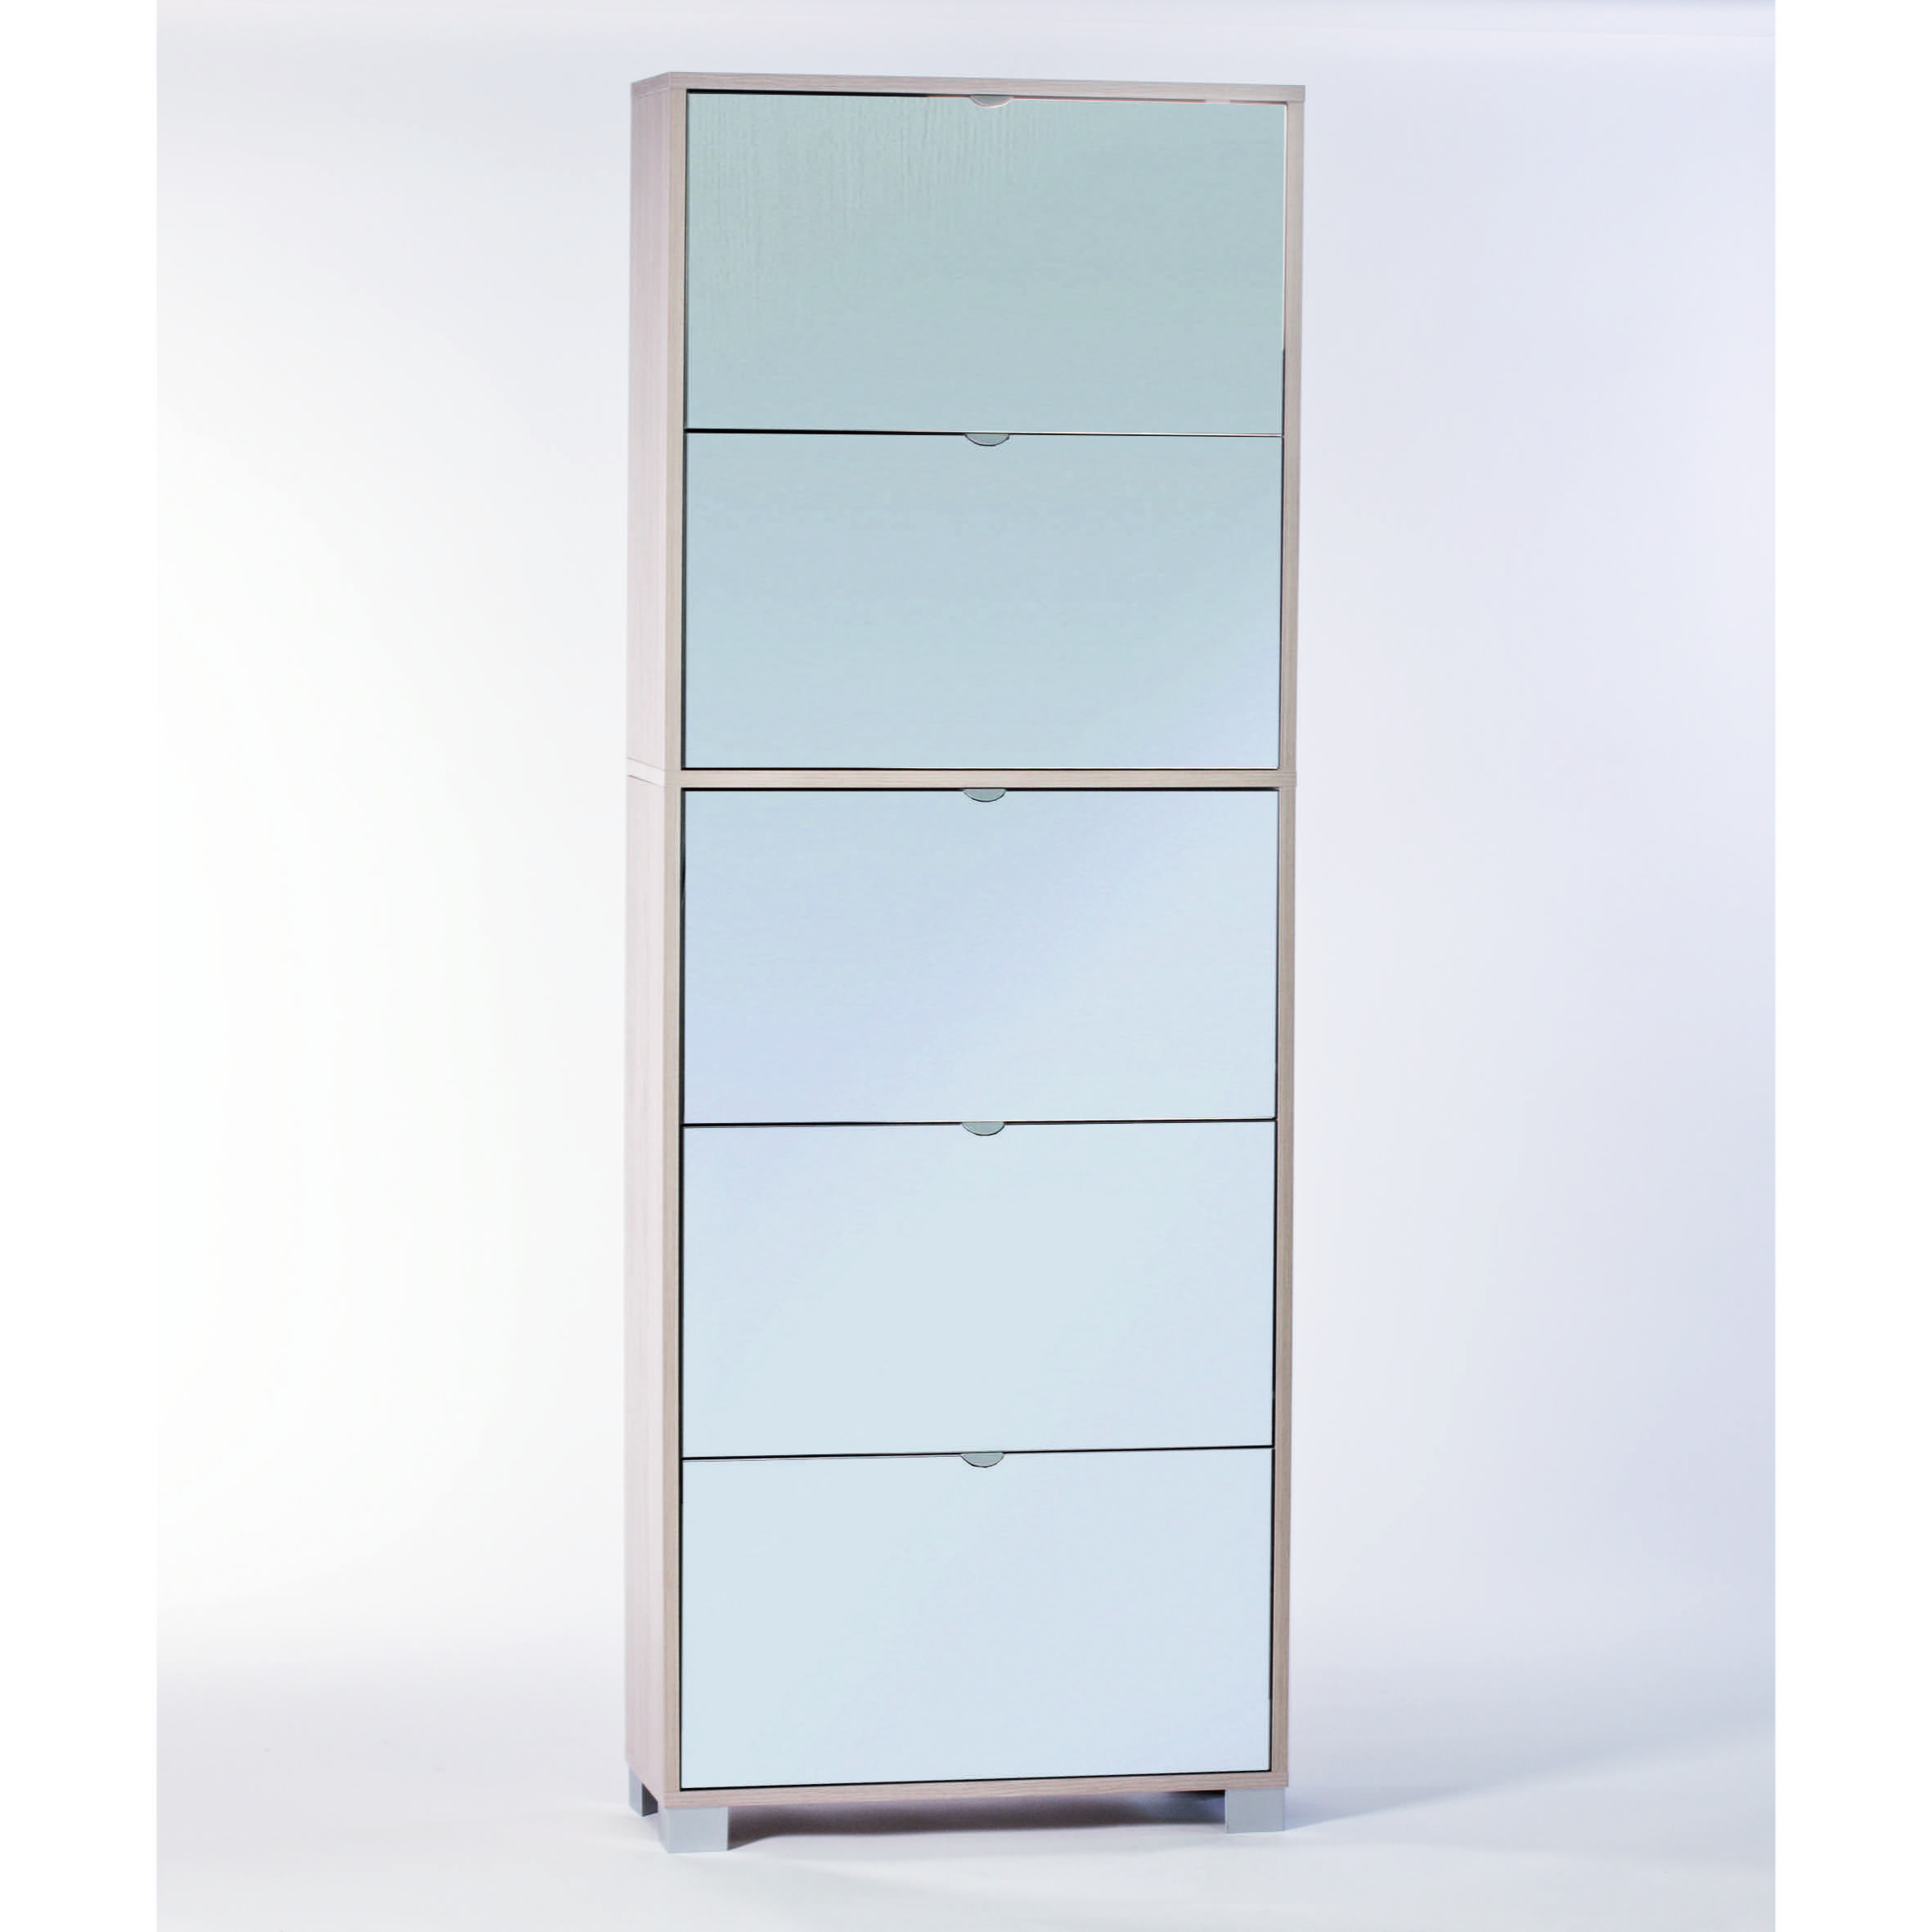 Sarmog A765SP Shoe Rack Collection 76 x 28 Inch Shoe Rack with 5 Double-Depth Mirror Folding Doors